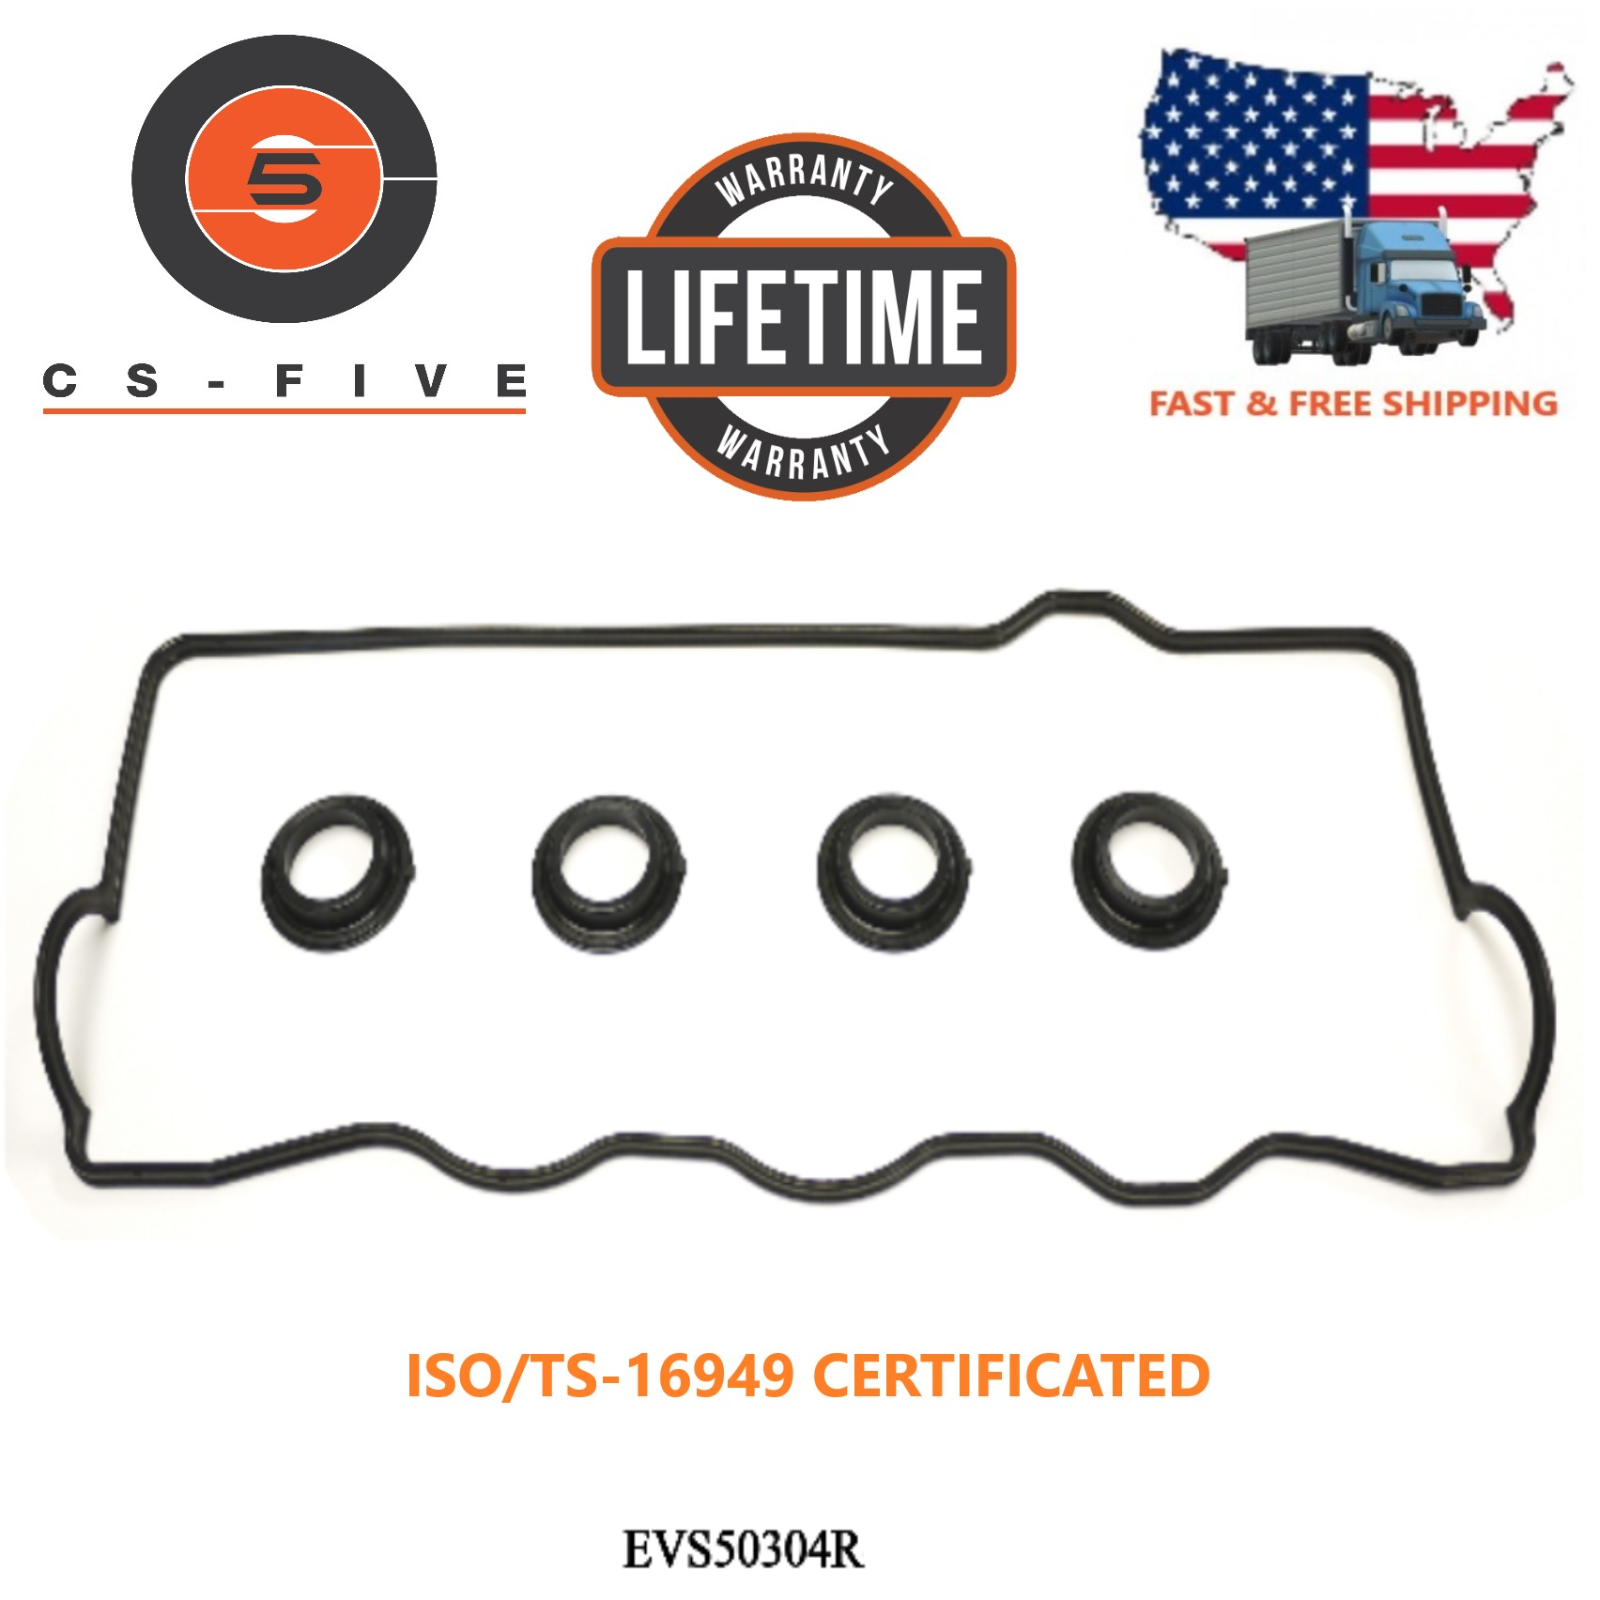 LIFETIME Engine Valve Cover Gasket Fit TOYOTA CAMRY 92 93 94 95 96 97 98 99 2000 - $11.99